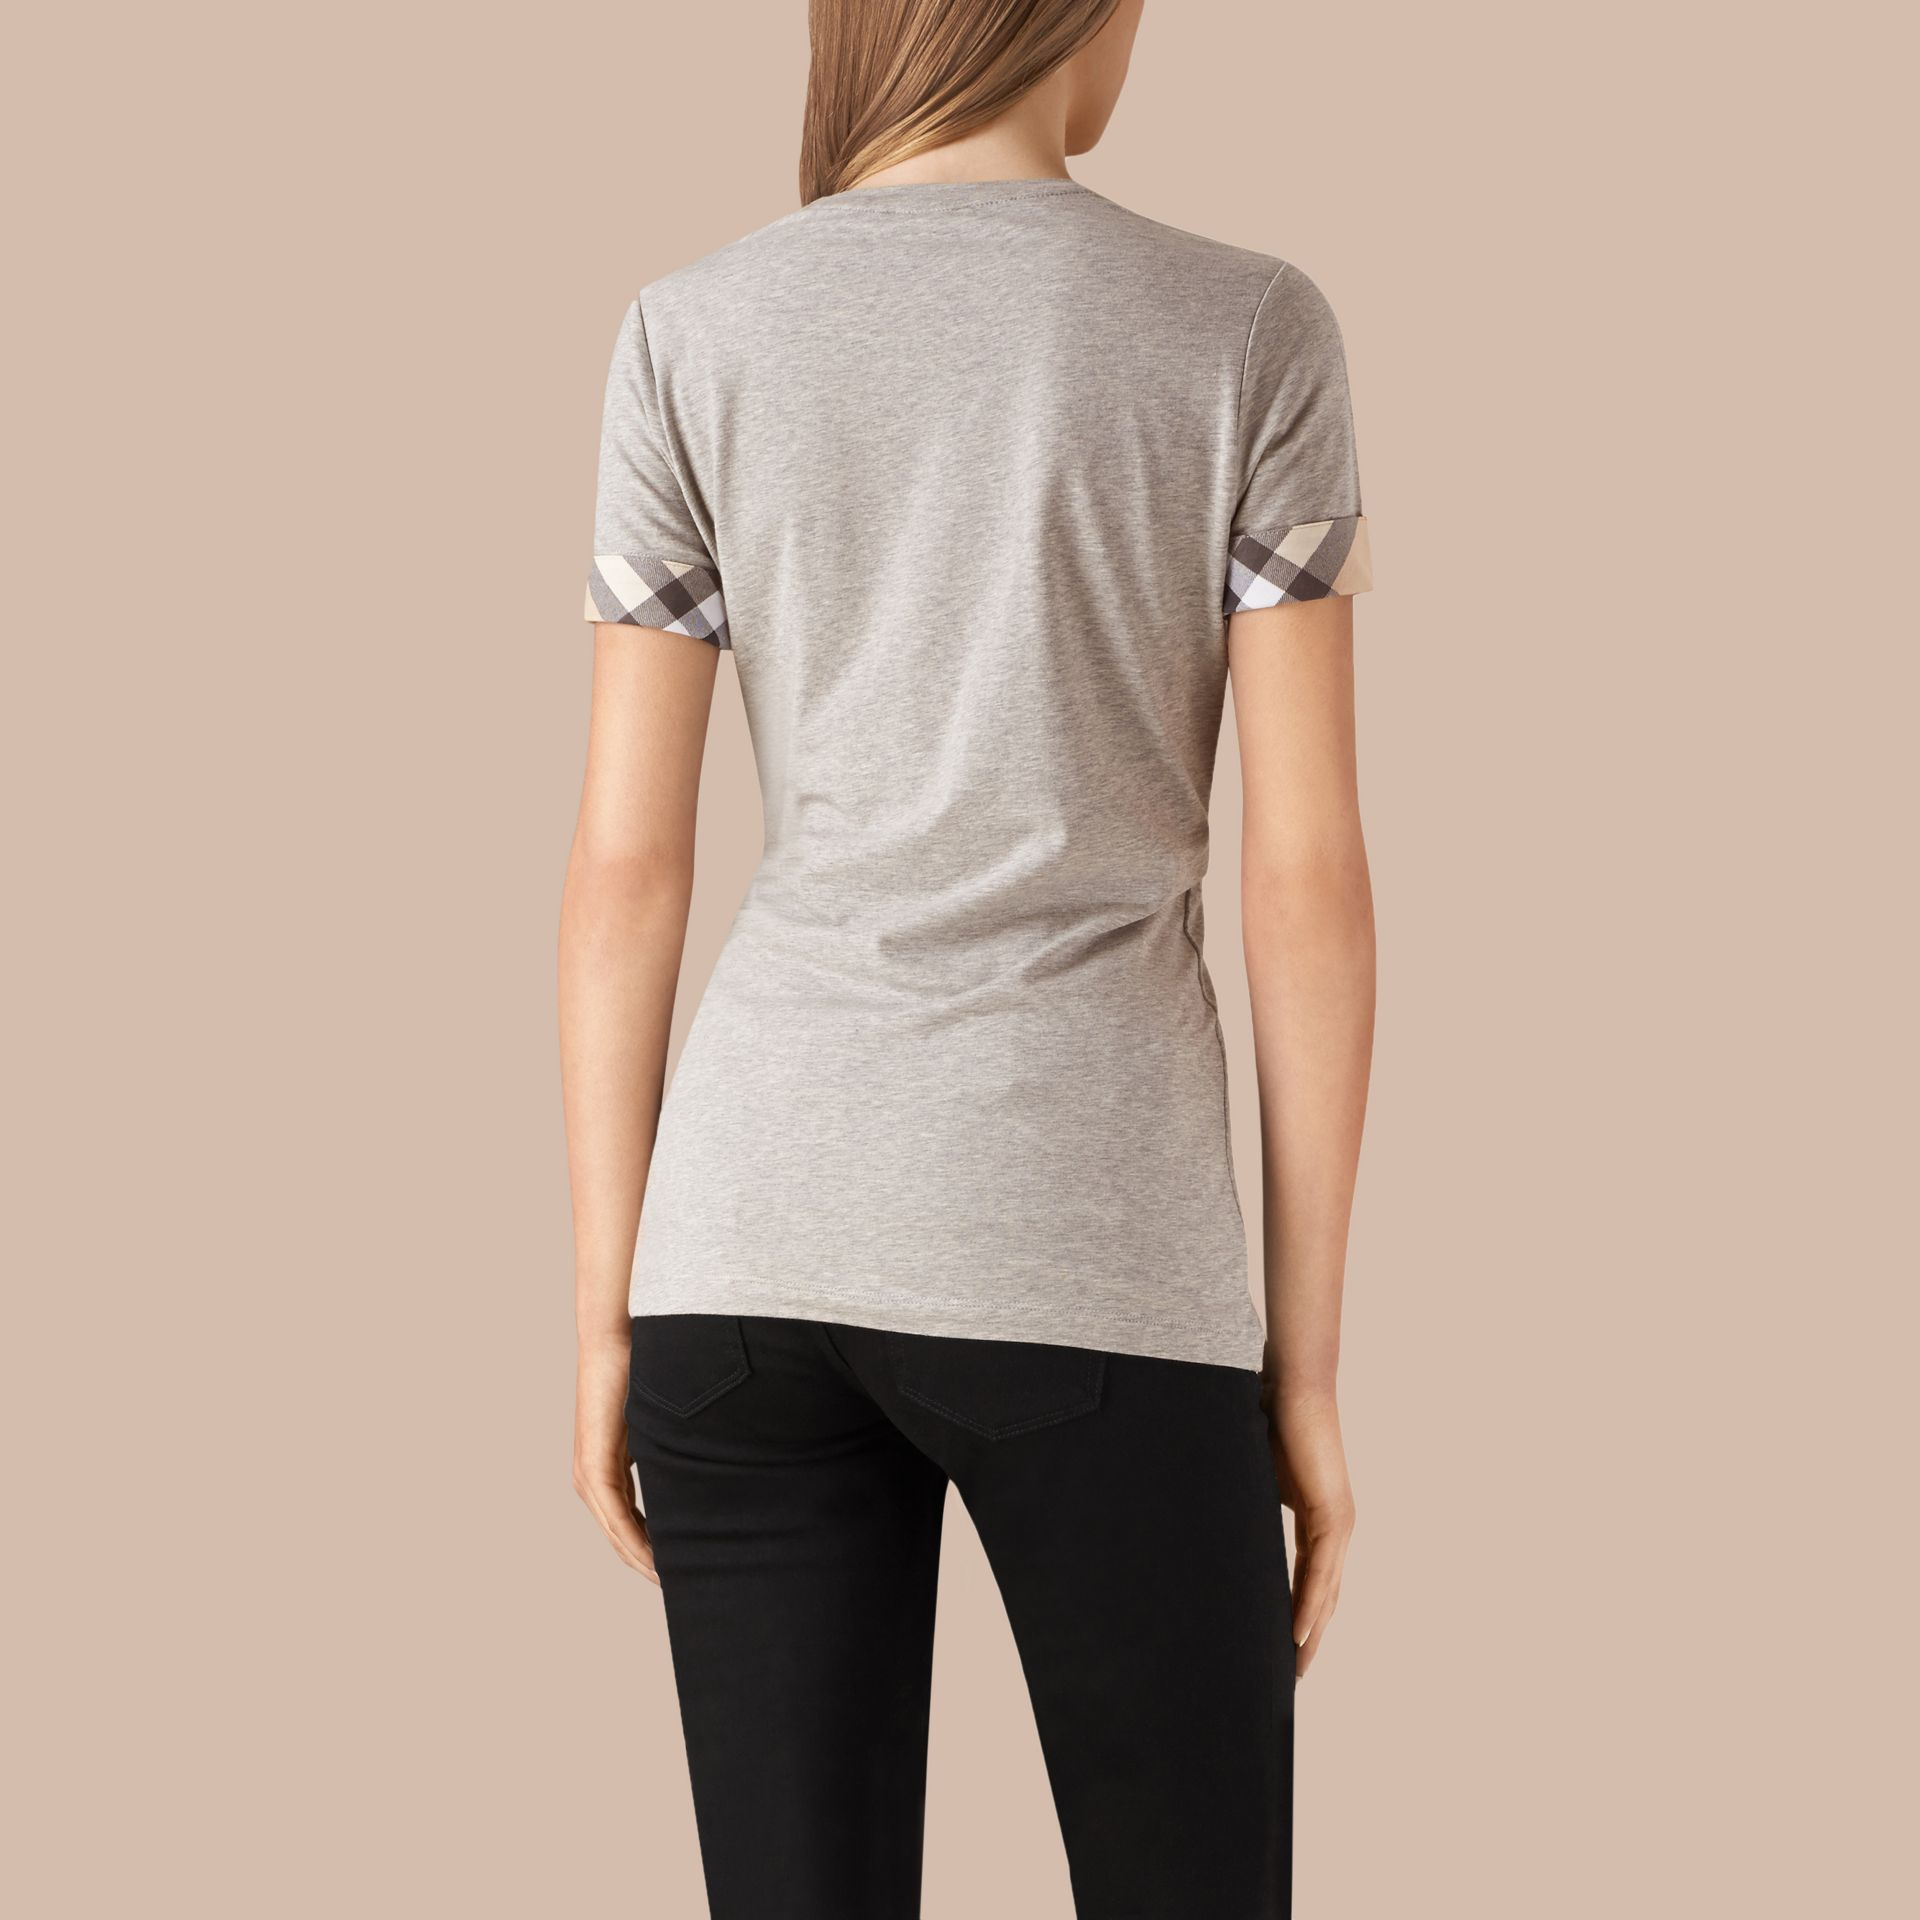 Pale grey melange Check Cuff Stretch Cotton T-Shirt Pale Grey Melange - gallery image 3